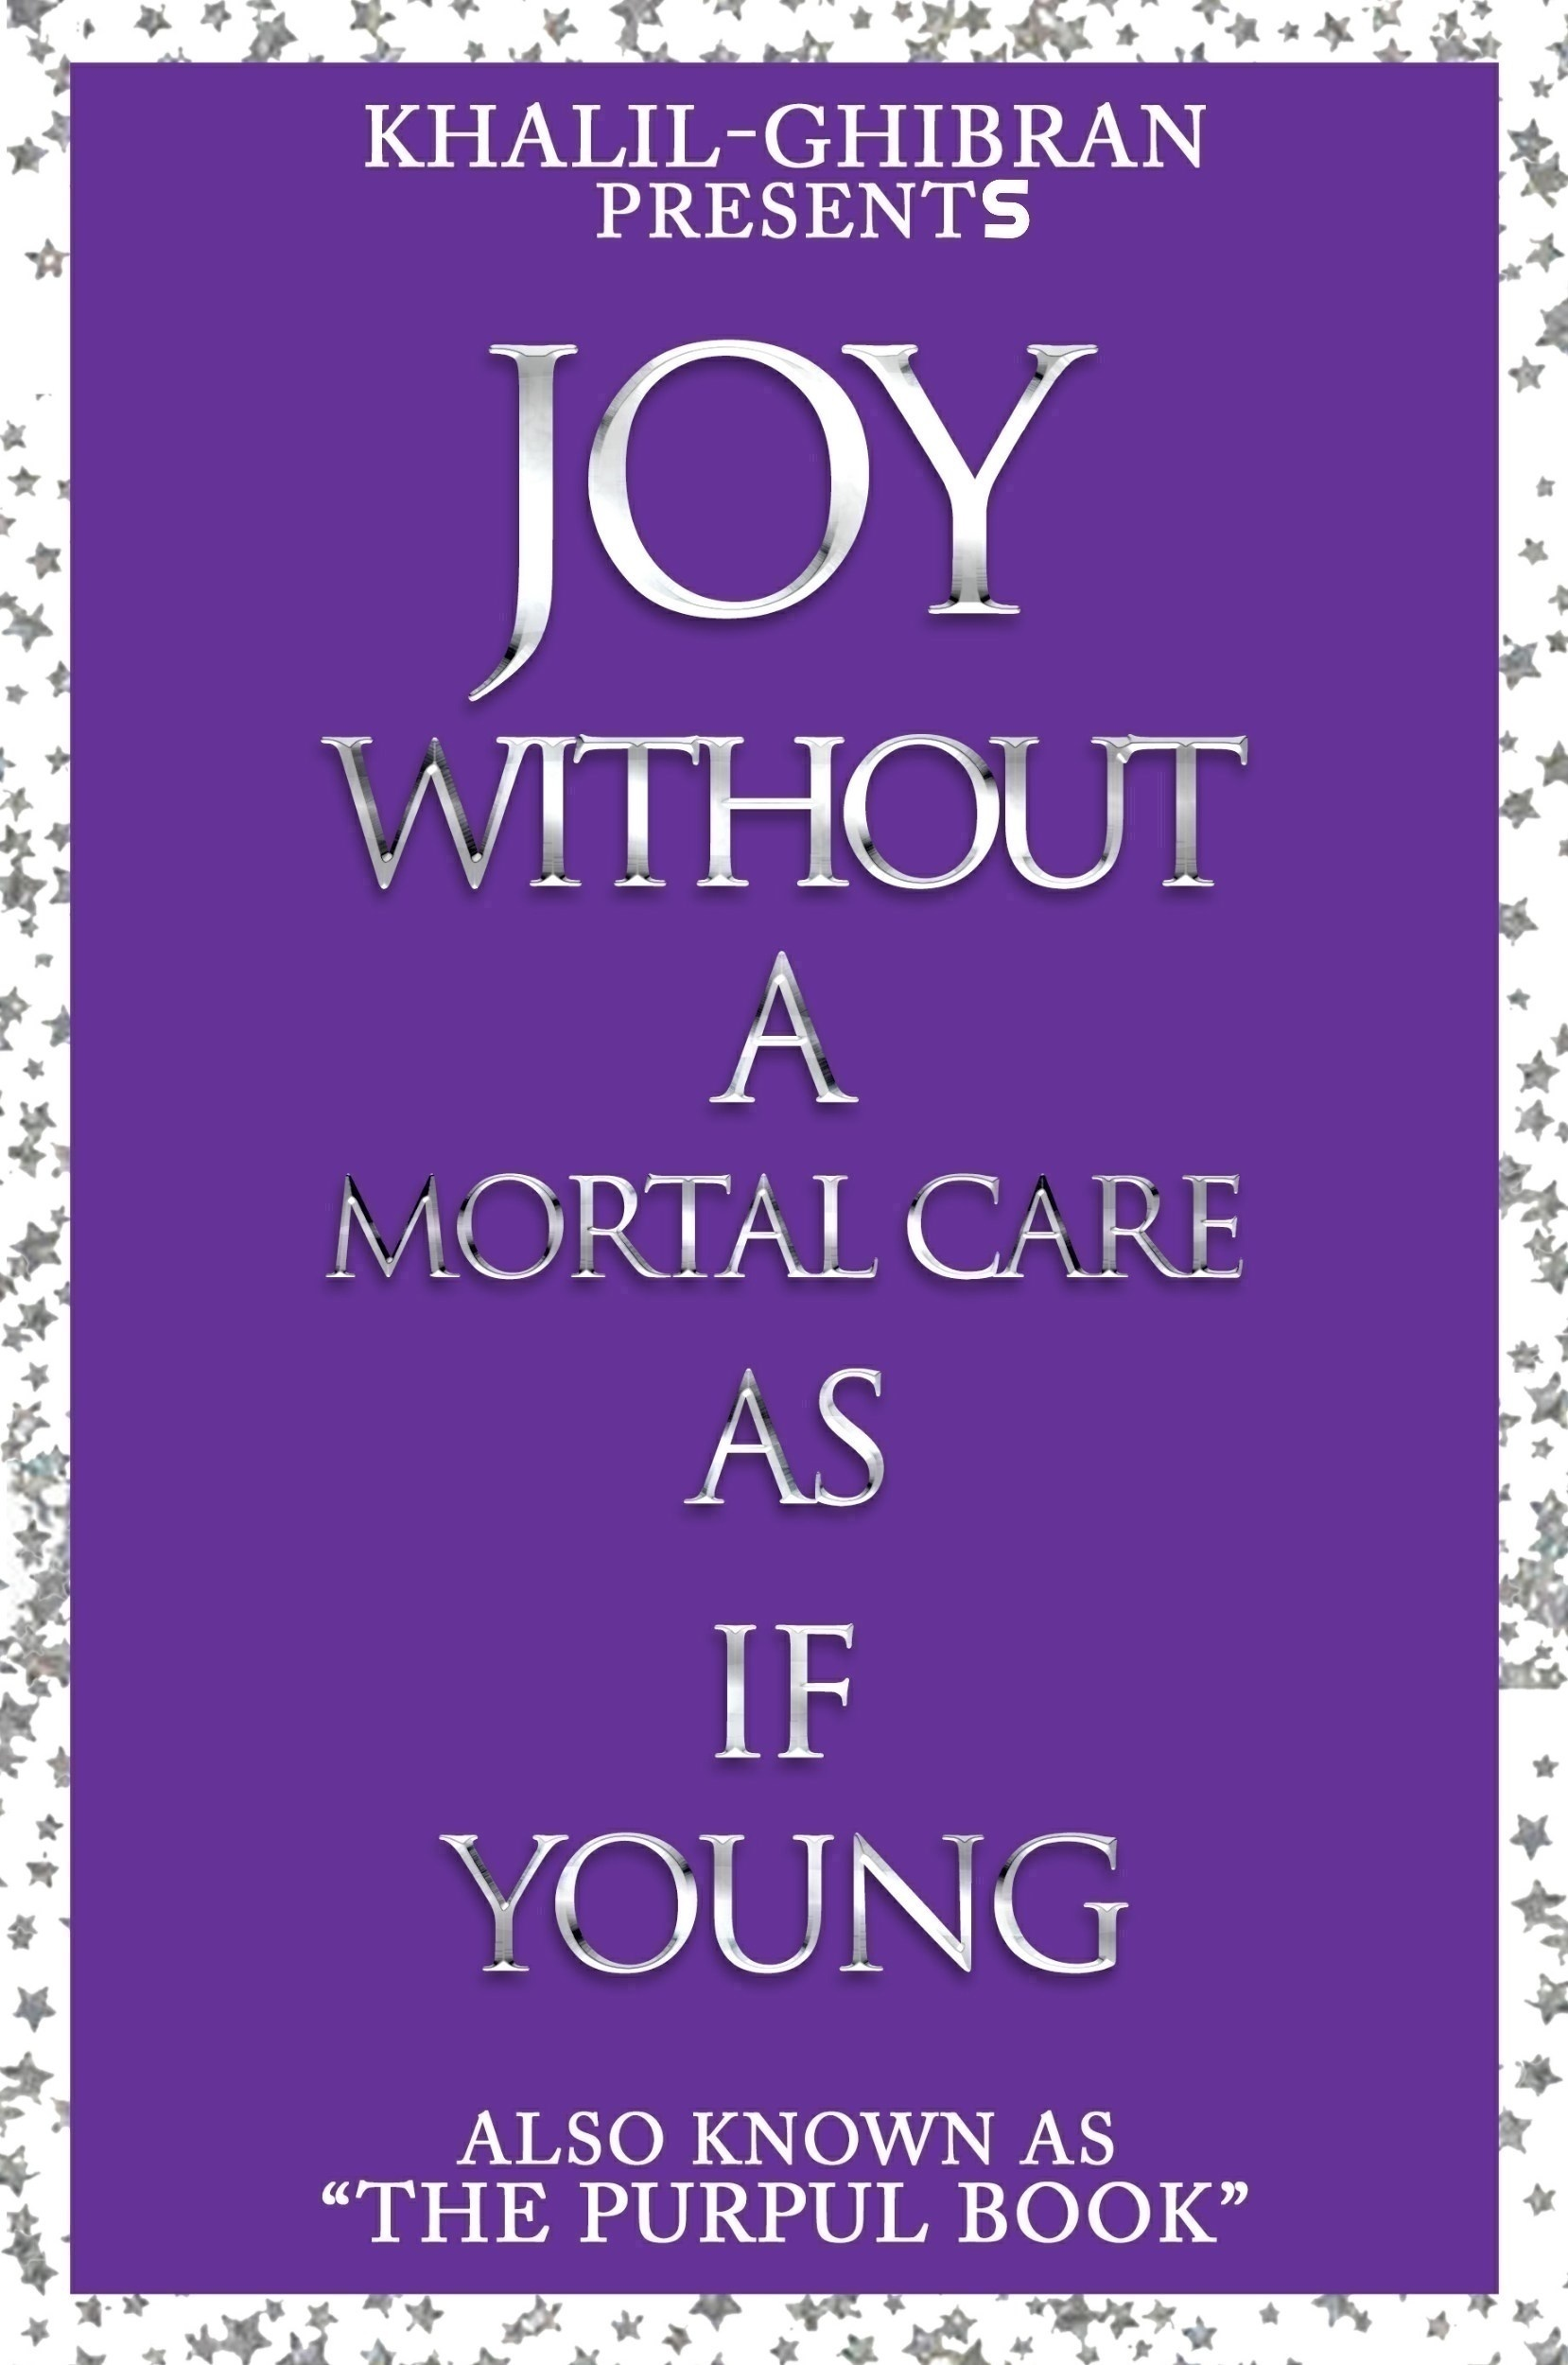 New Joy Mortal Book